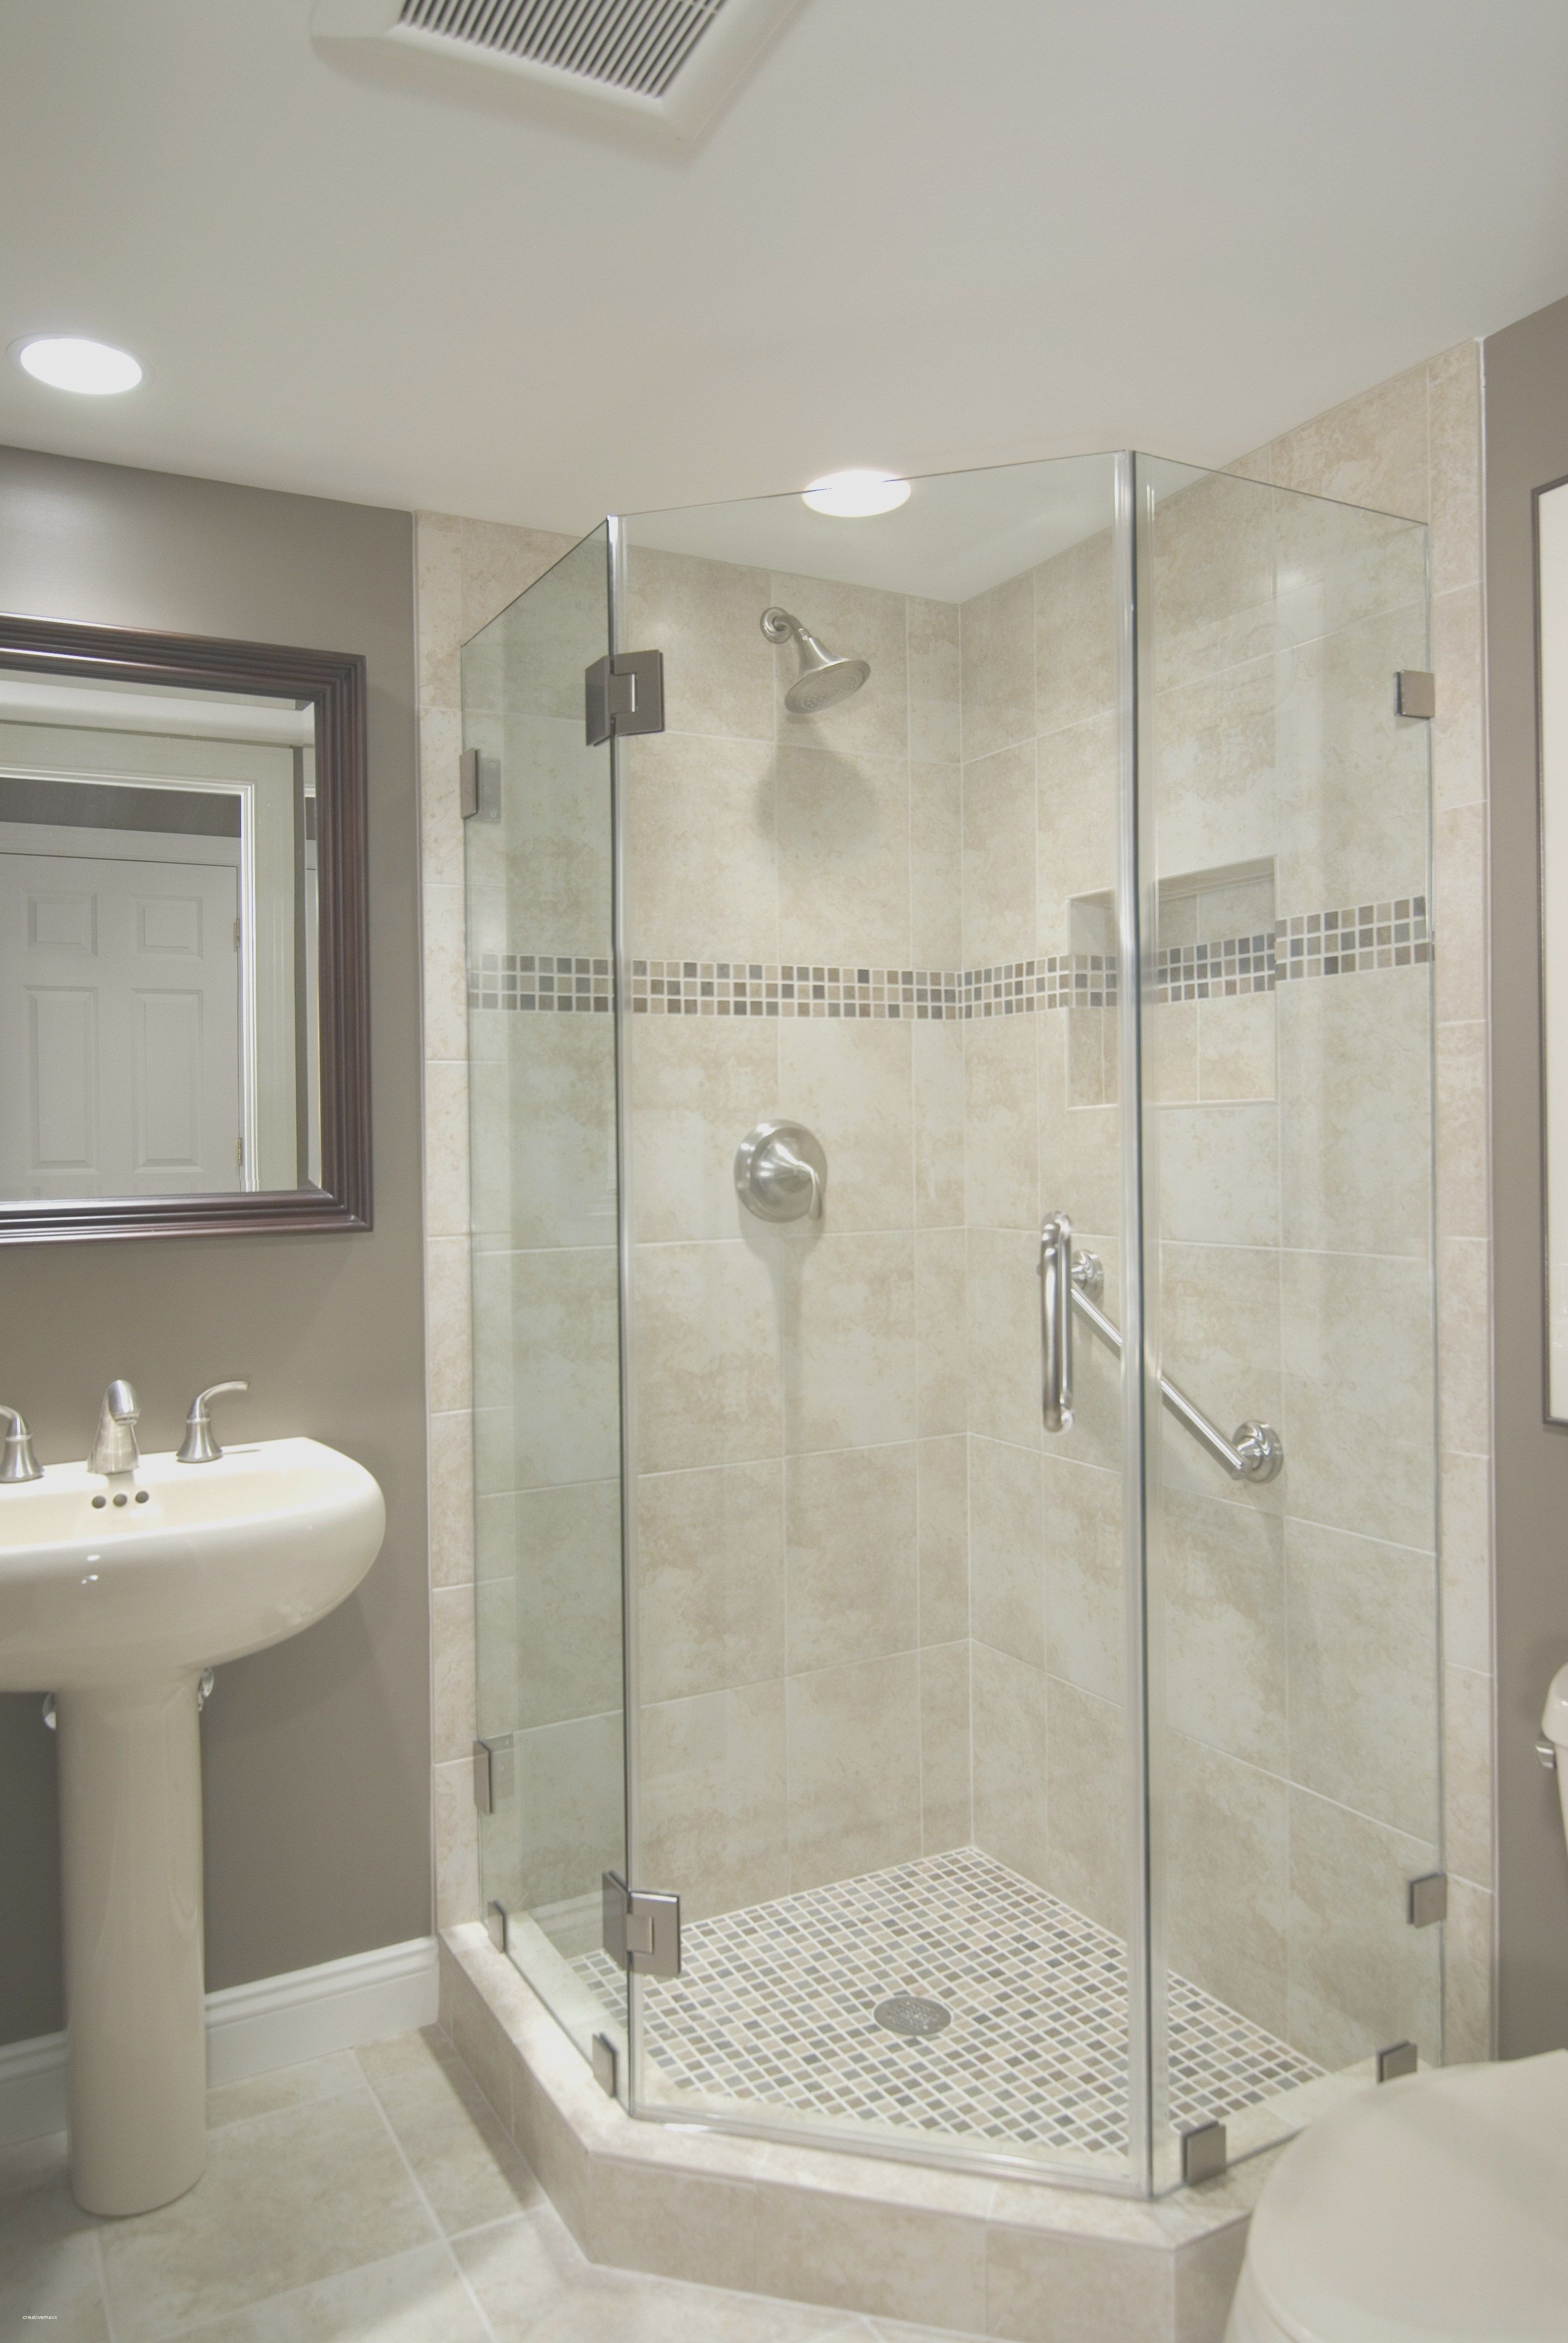 19 Fresh Small Bathroom Ideas With Photos With Images Basement